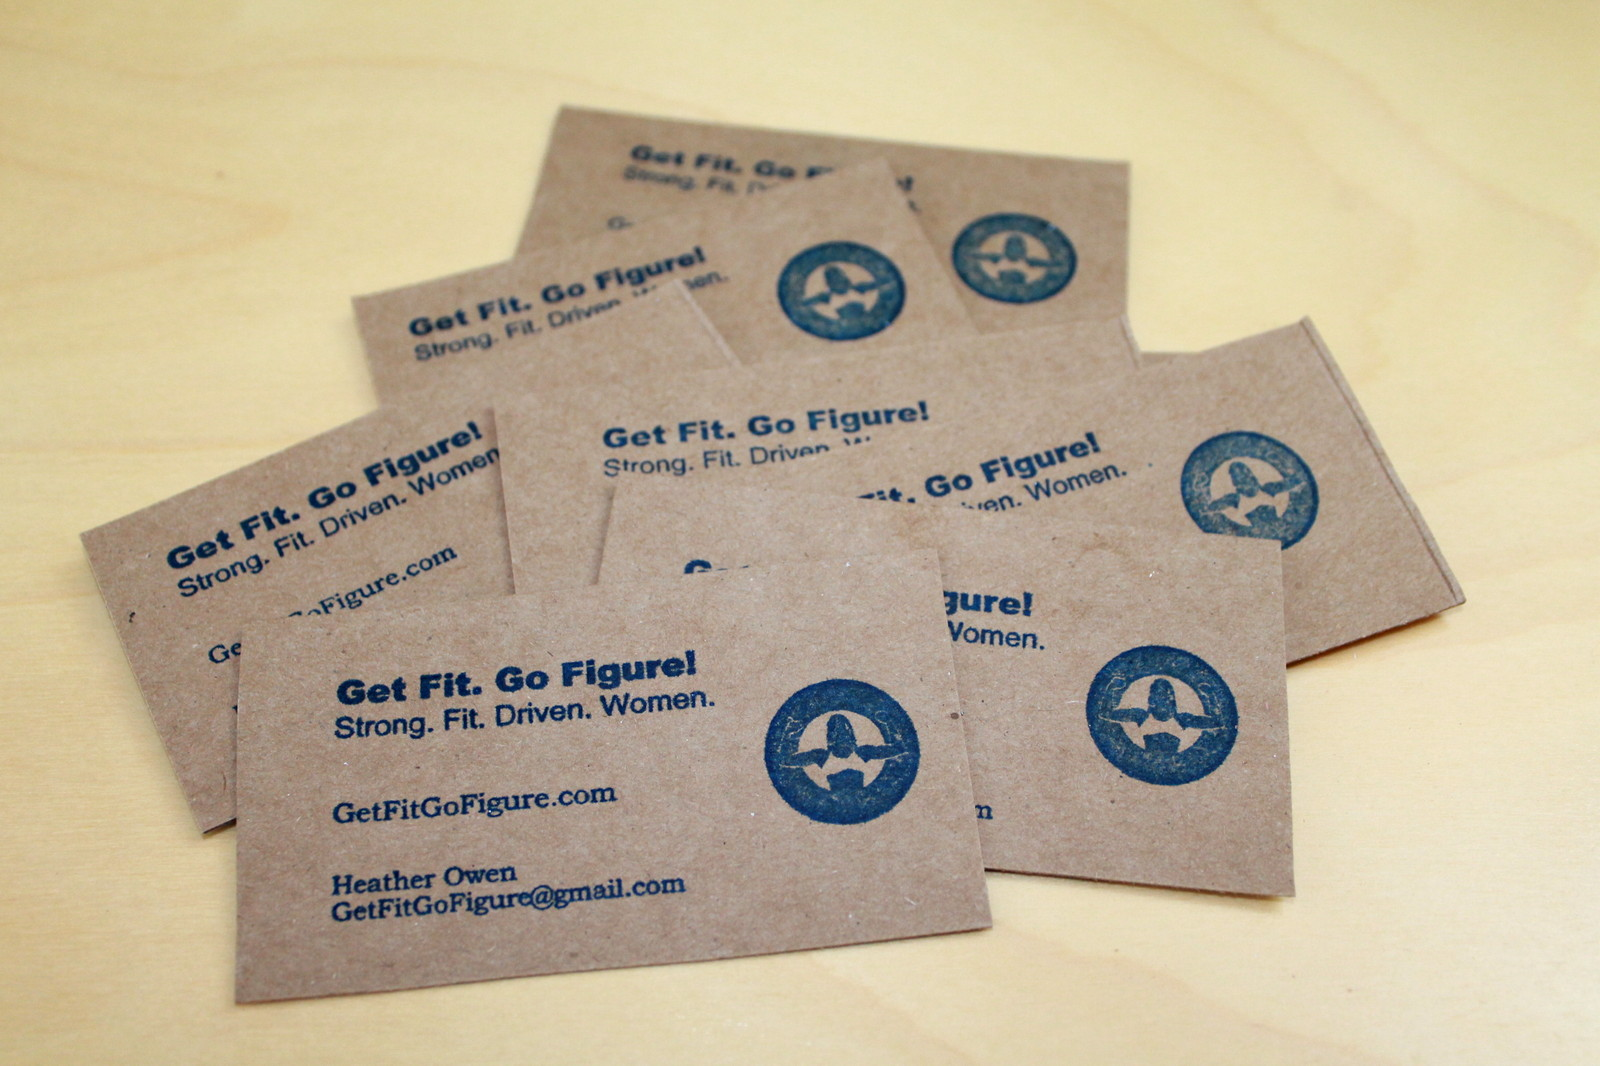 3 easy steps to diy recycled business cards cheap and easy get 3 easy steps to diy recycled business cards cheap and easy reheart